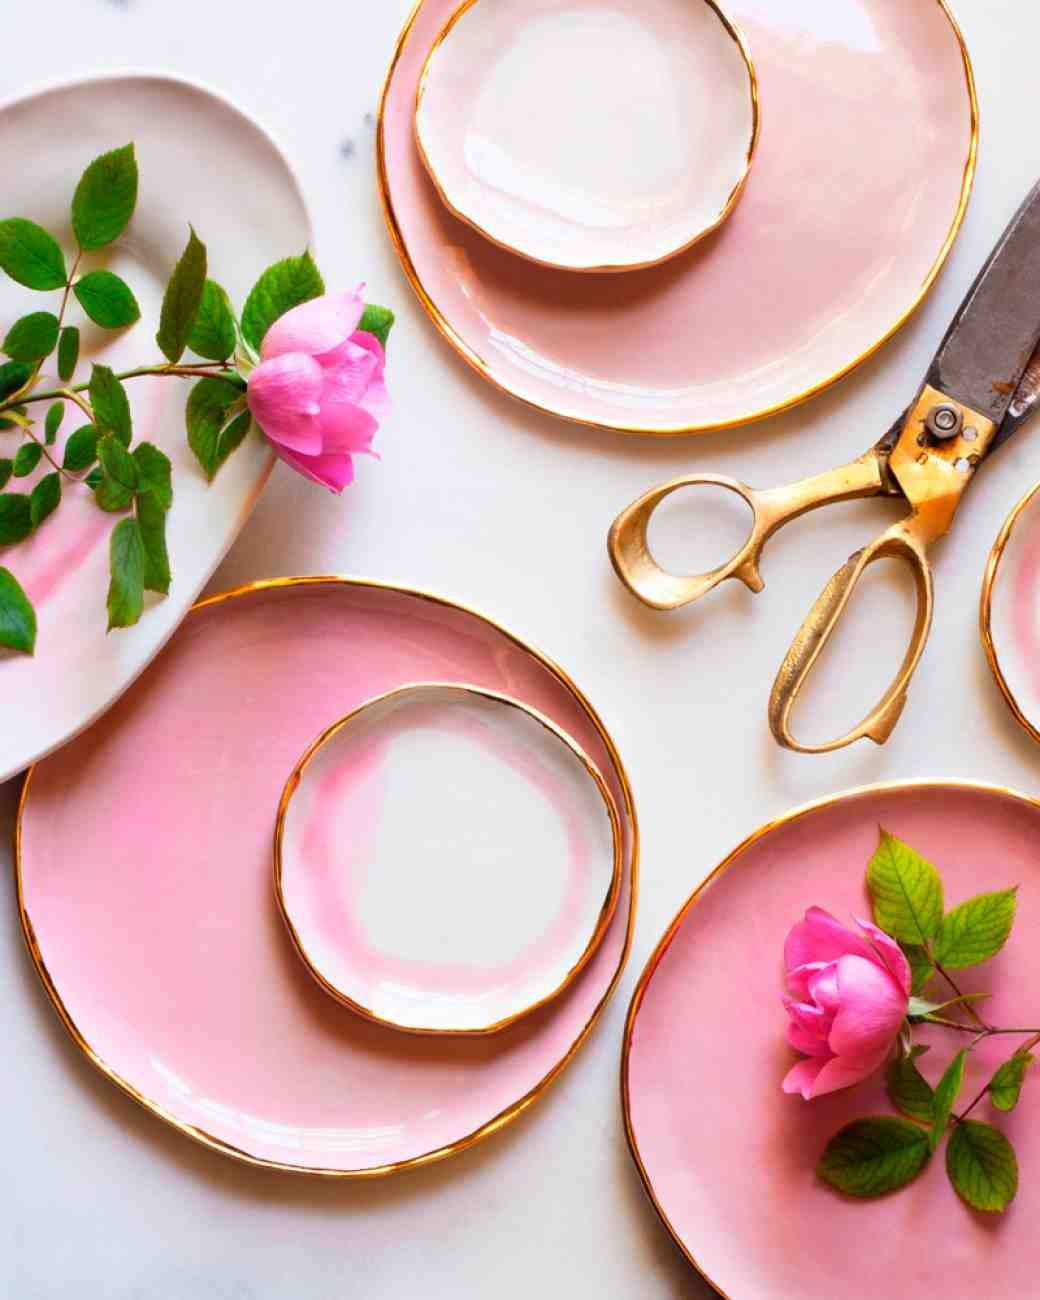 Beyond the Mason Jar: 8 Wedding Trends You Haven't Seen on Pinterest (Yet) | Martha Stewart Weddings -- Vases and dinnerware with organic texture and subtle imperfections are on our wishlists. You can collect pieces from up-and-coming ceramicists by scouring Etsy and Ebay. Or treat your maid of honor to a fun ceramics class (yes—they have classes with wine!) to create a few of your own. Looking for inspiration? We love everything by Suite One Ceramics, Helen Levi, and Clam Lab.